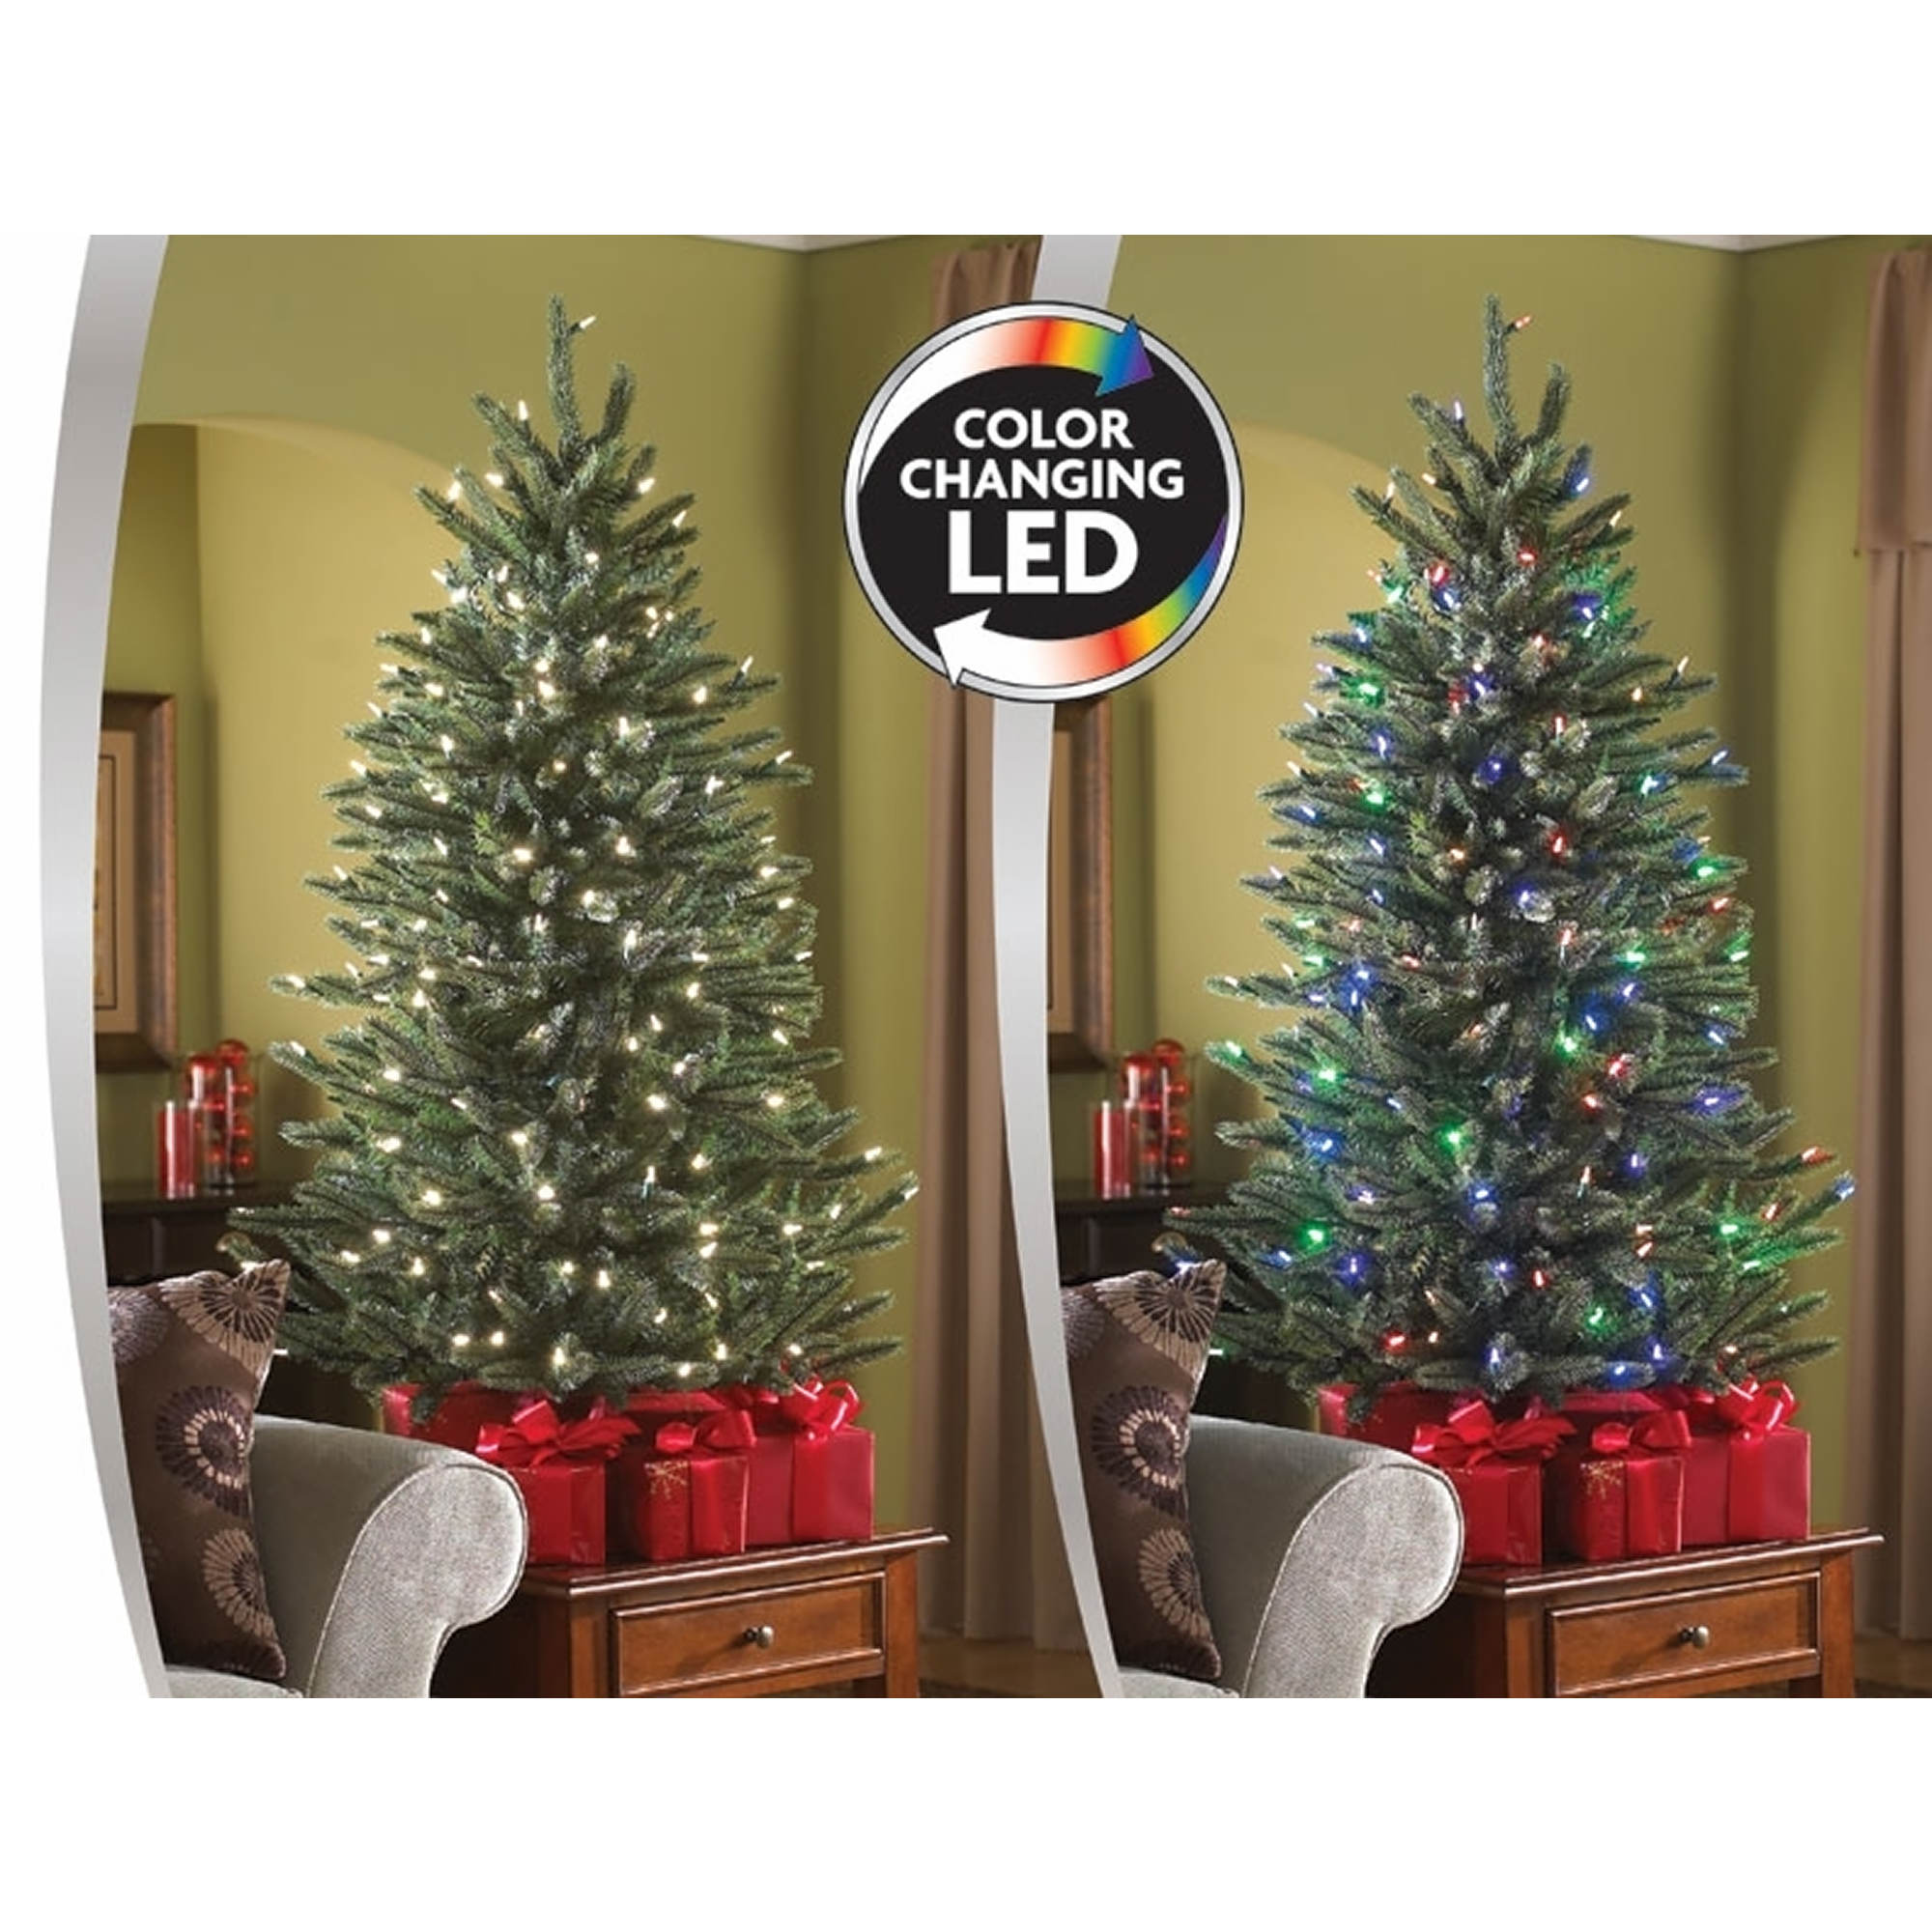 color changing led tree 0 undefined 1 undefined 2 undefined - Color Changing Led Christmas Tree